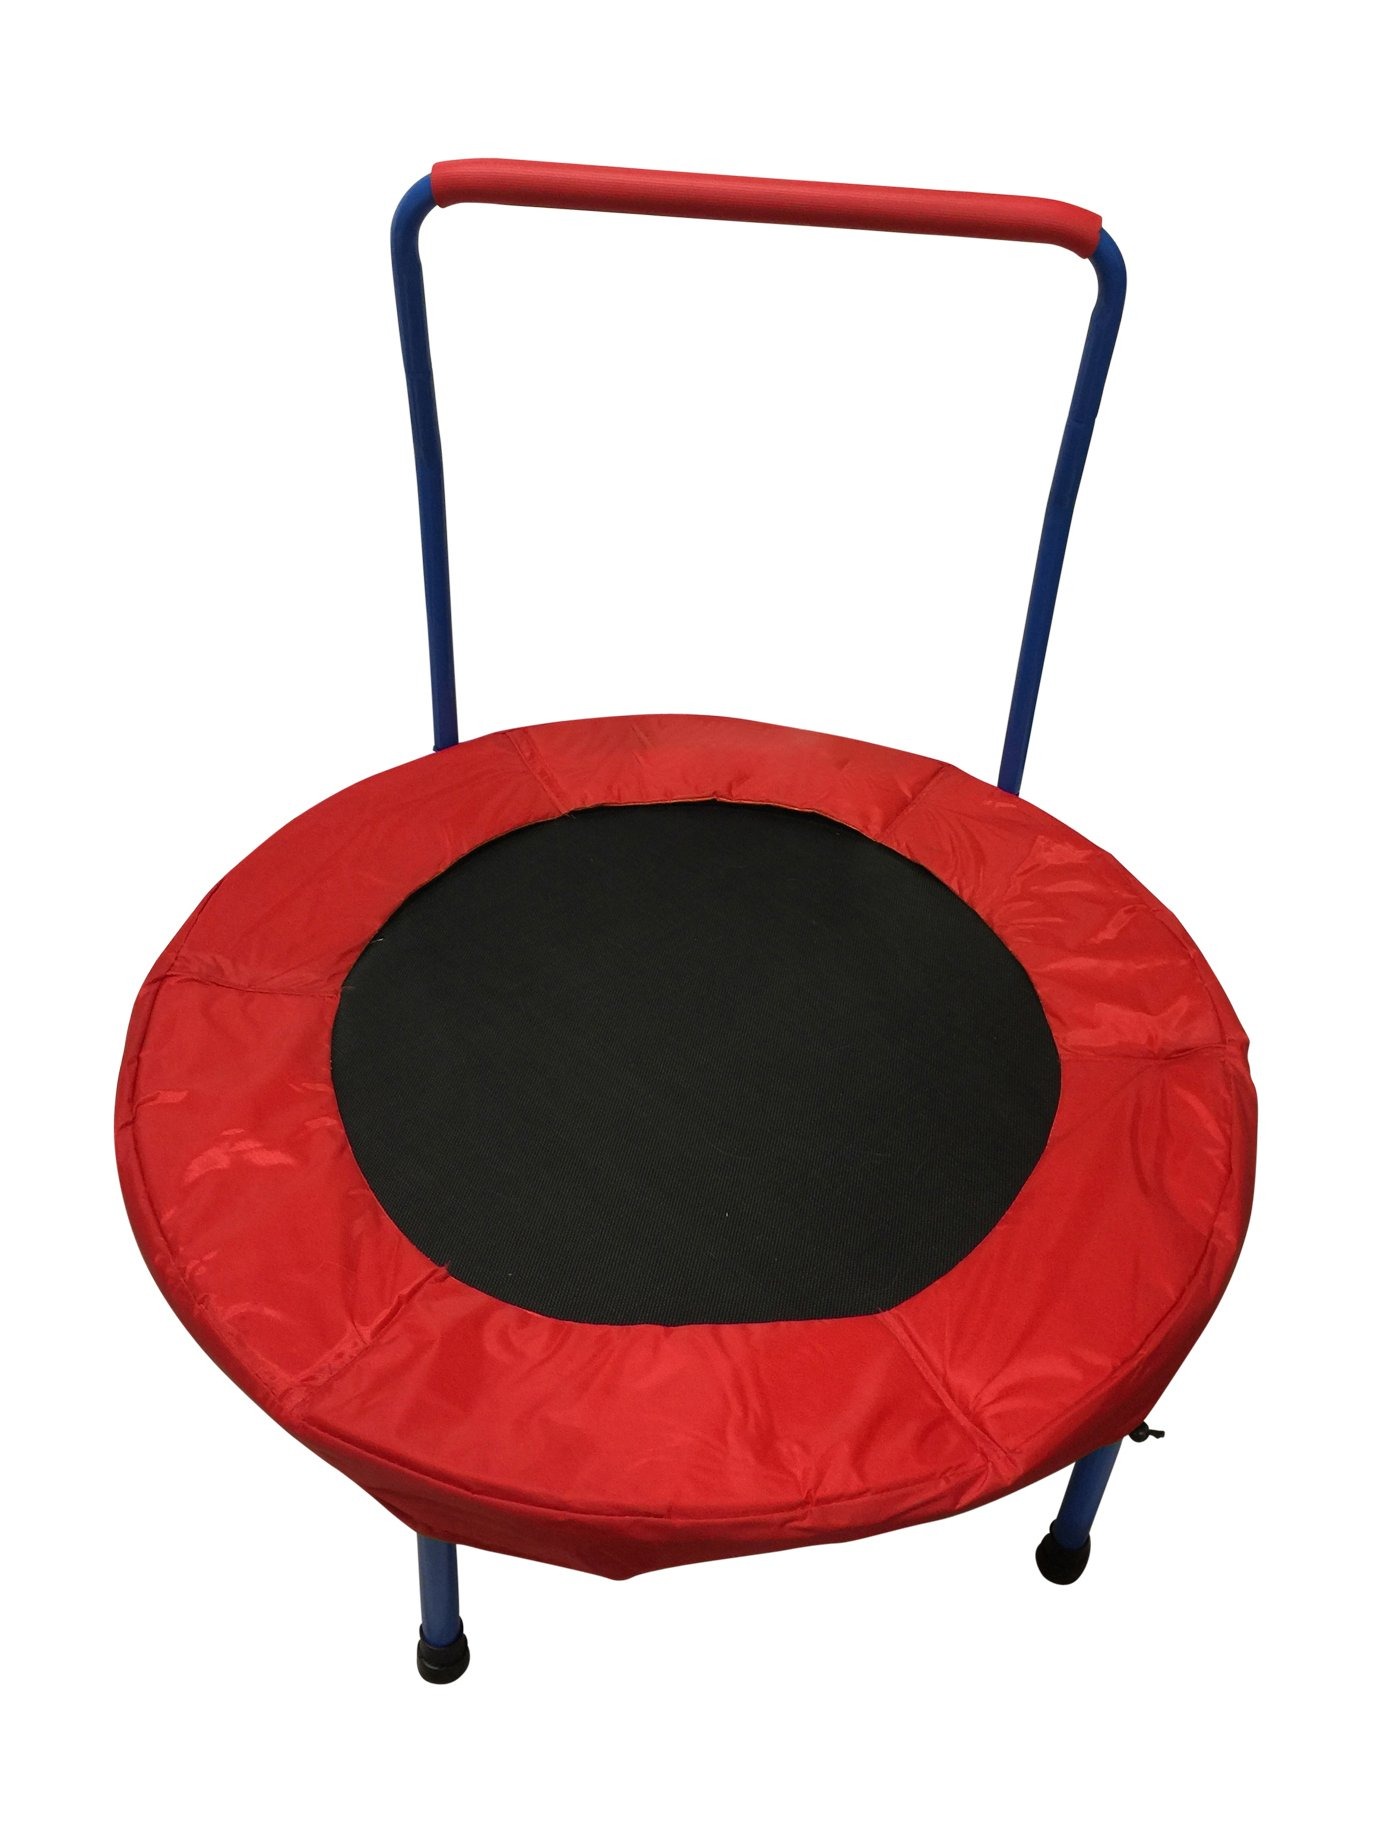 Portable Foldable Toy Trampoline for Kids – 36'' Perfect for Indoor and Outdoor Use | Sturdy Durable Ensure Safety | Build Confidence & Cognitive and Physical Strength Activities | Easy to Assemble